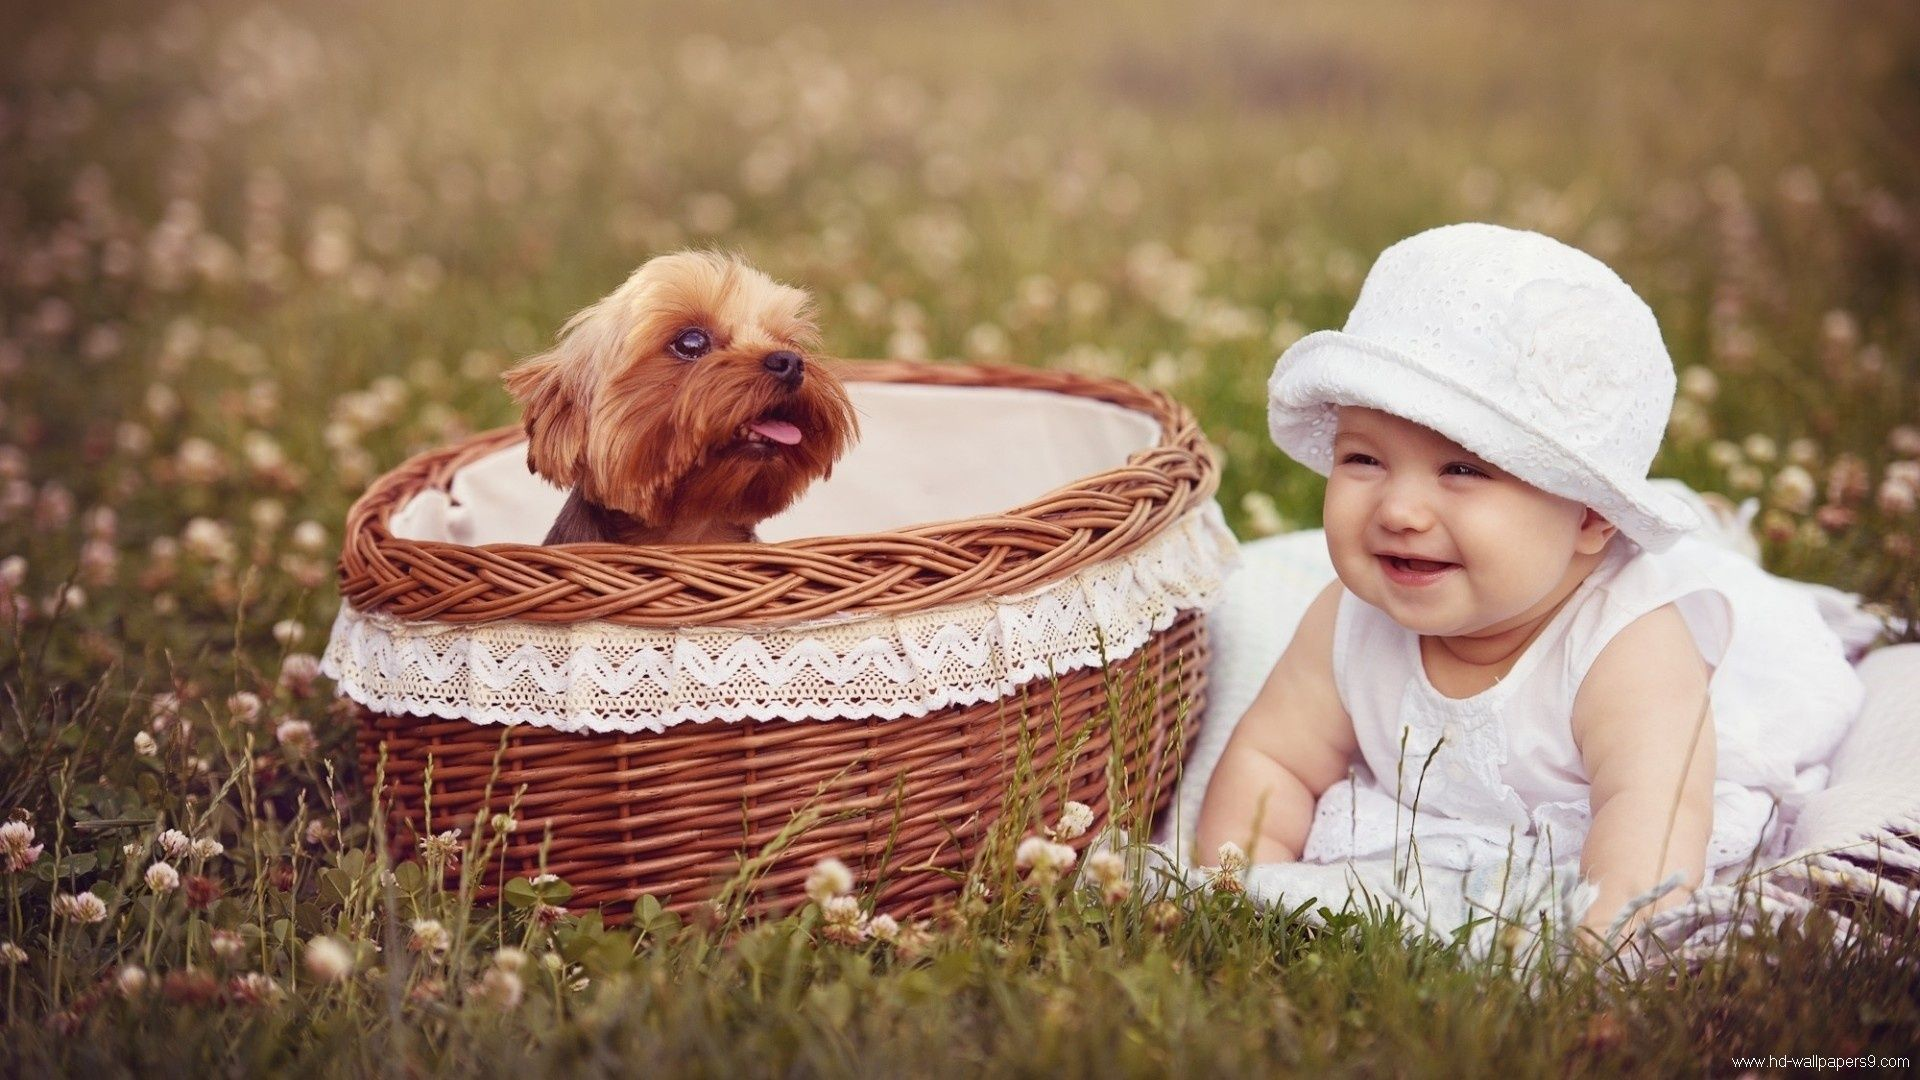 Download Cute Babies Wallpapers: 45 Small And Cute Baby Wallpaper Download For Free